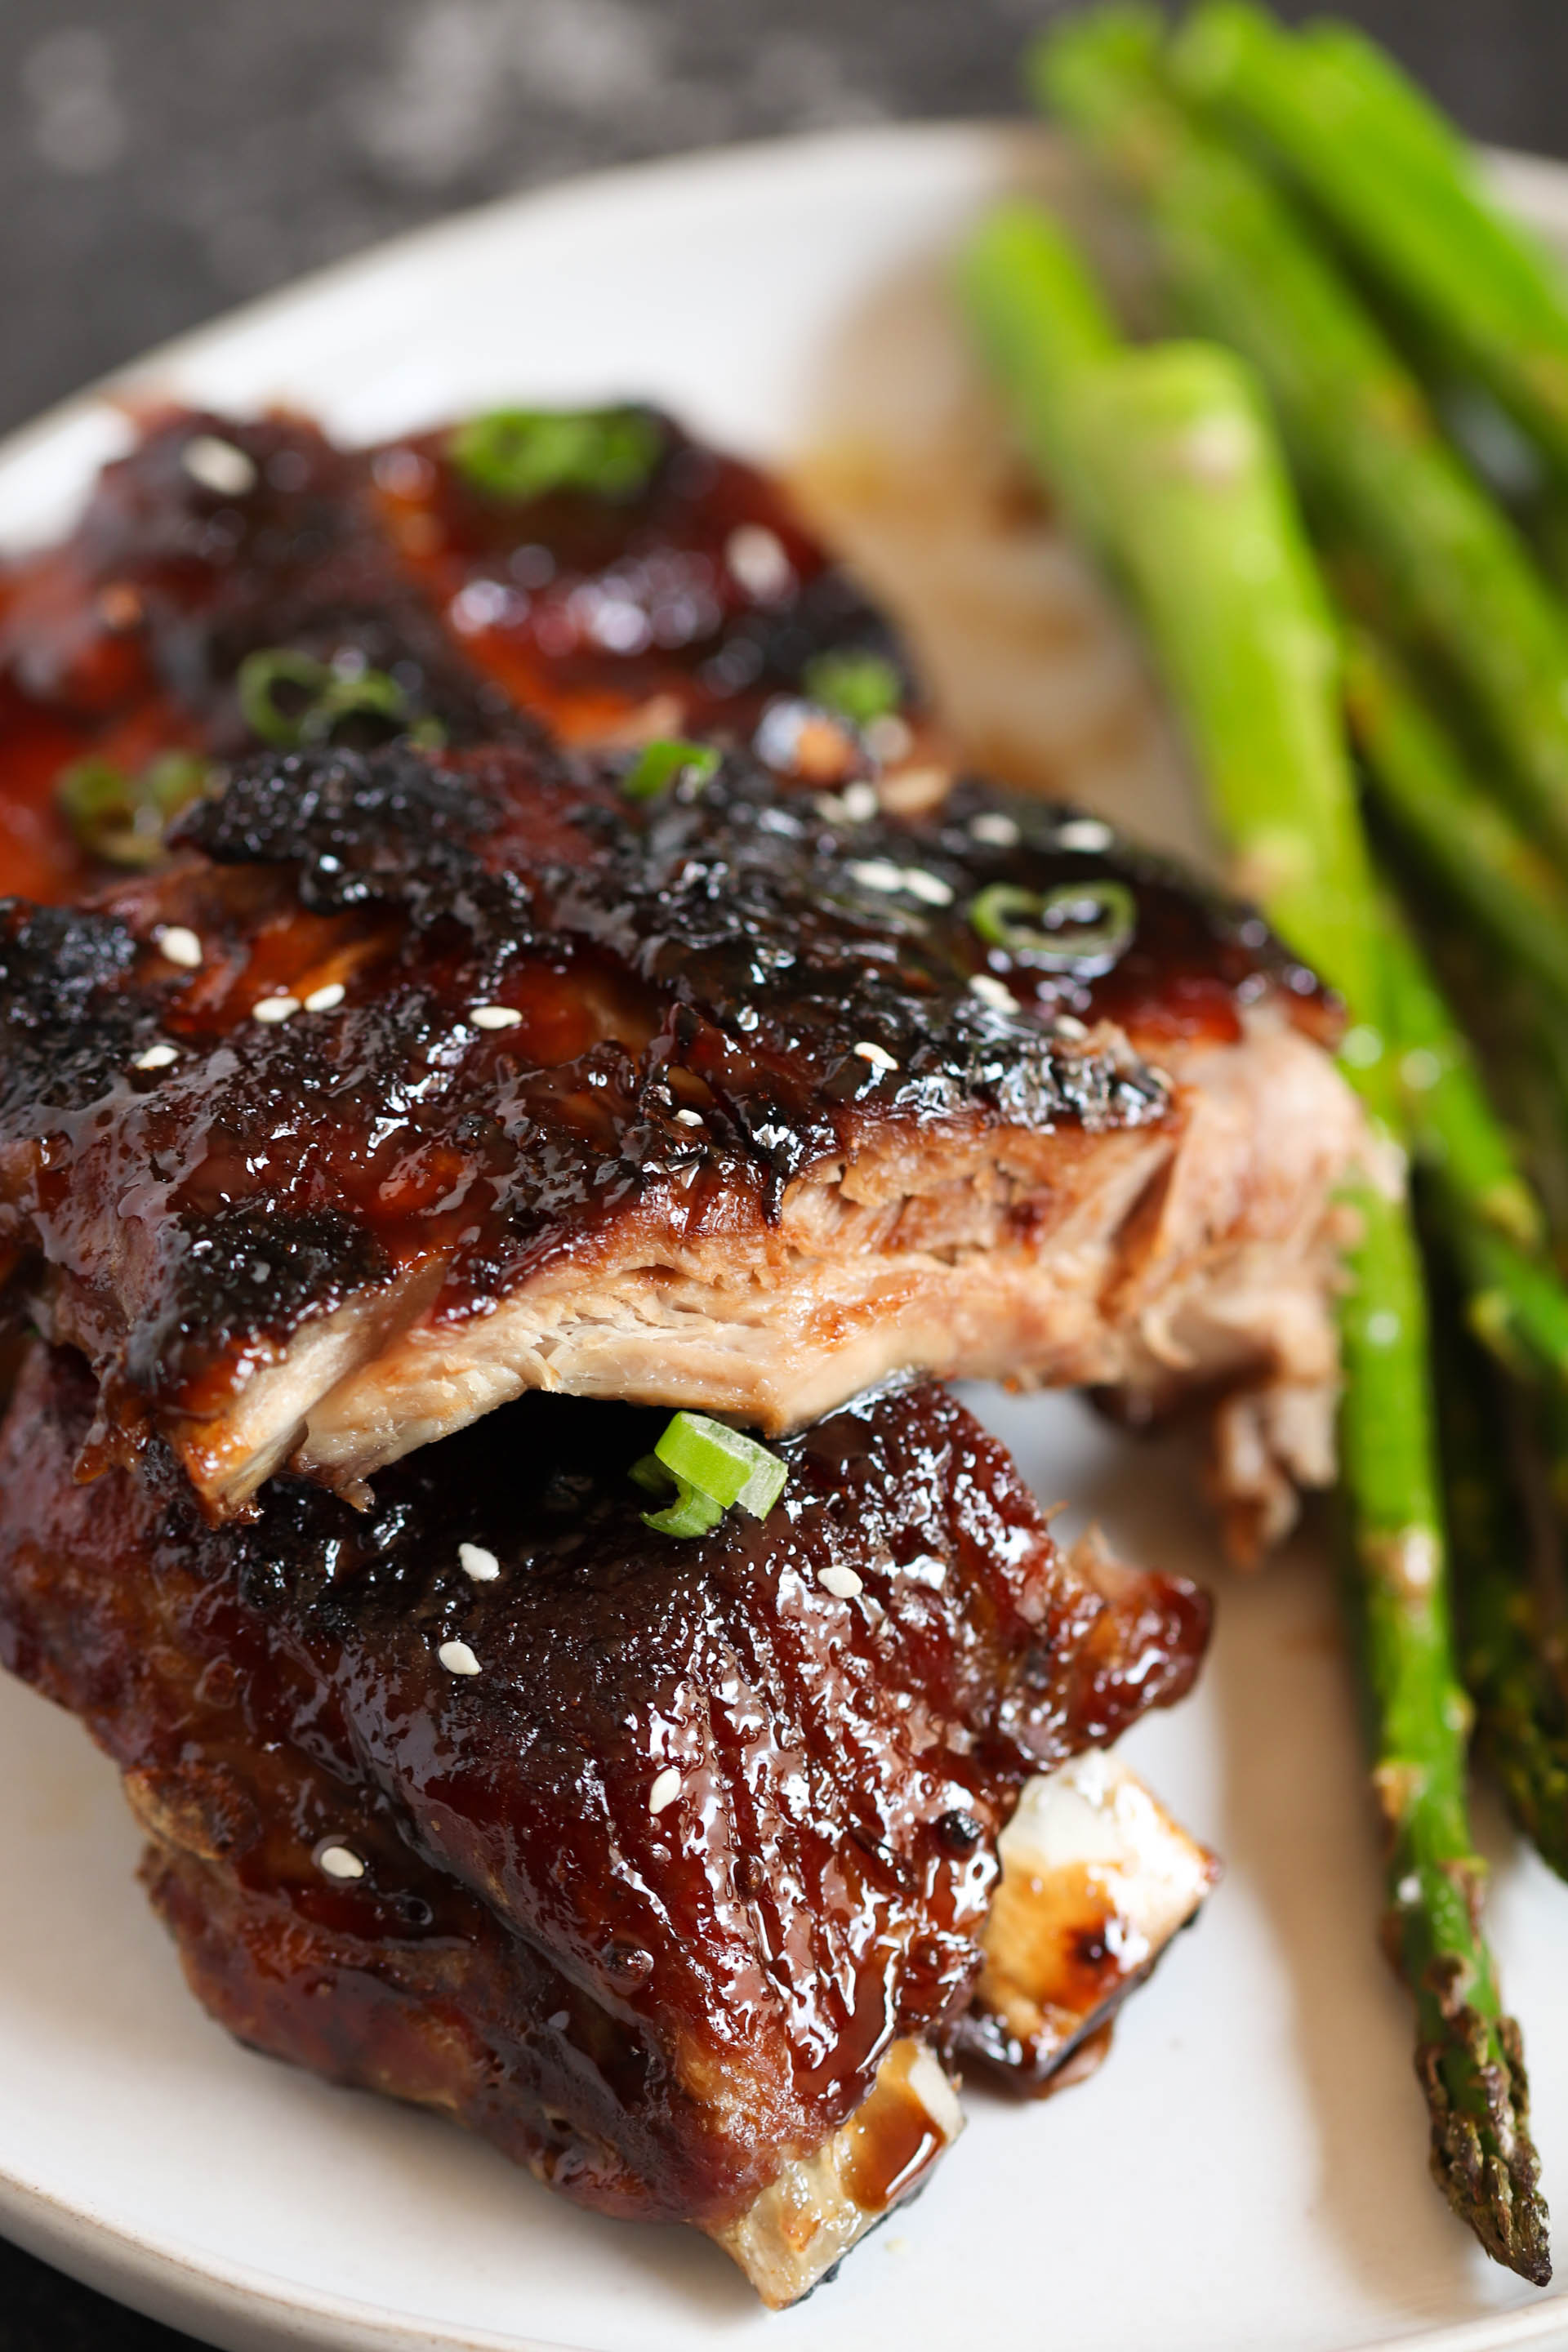 Sticky Asian Ribs with asparagus on a plate